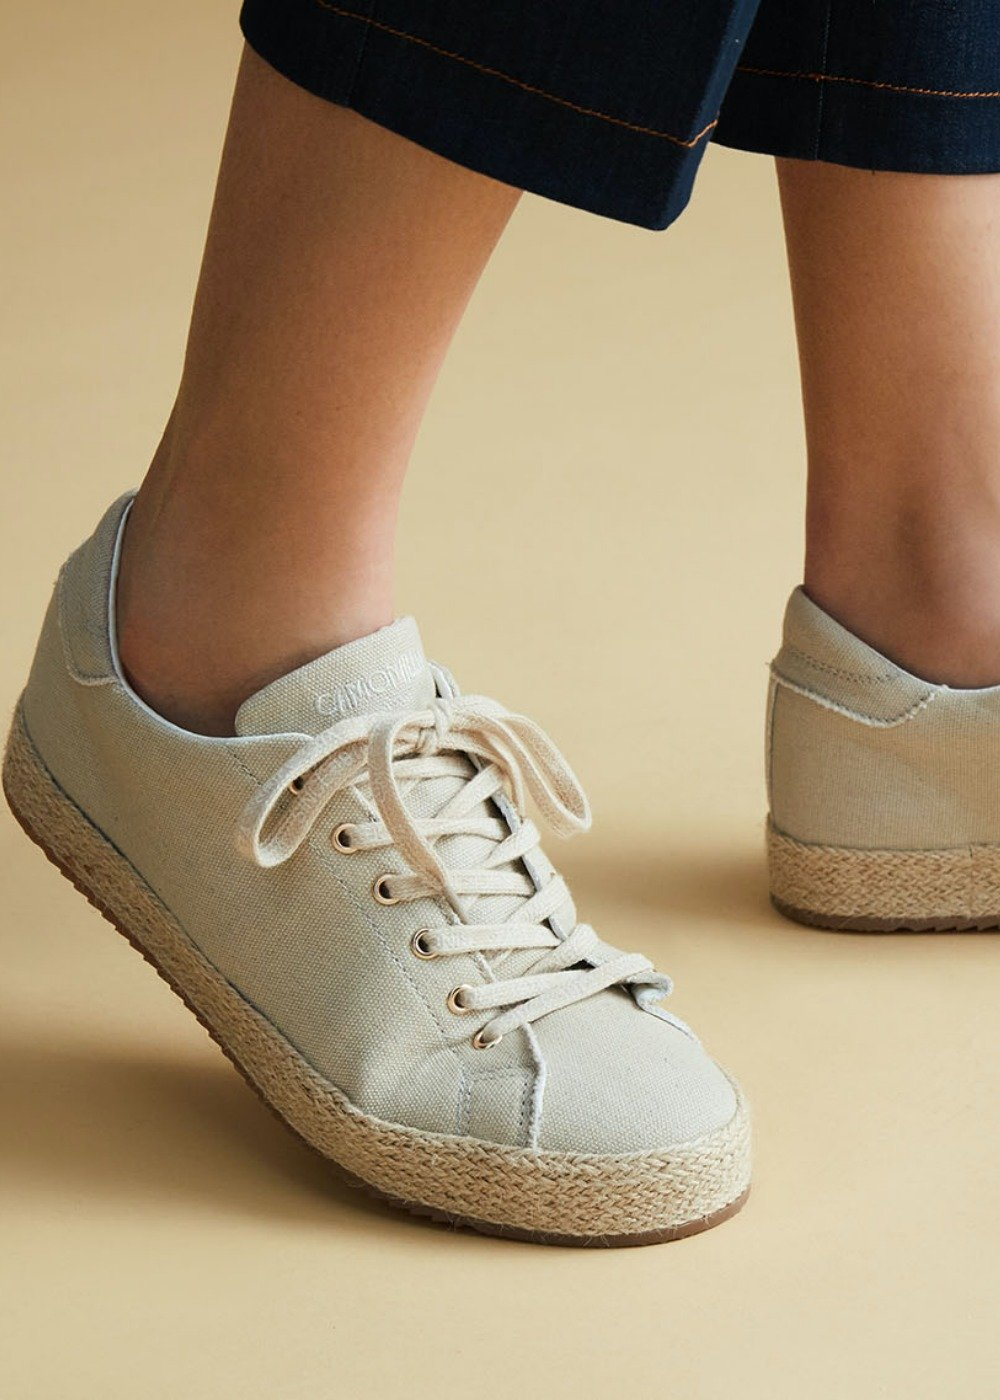 Shelly canvas shoe with straw sole - Light Beige - Woman